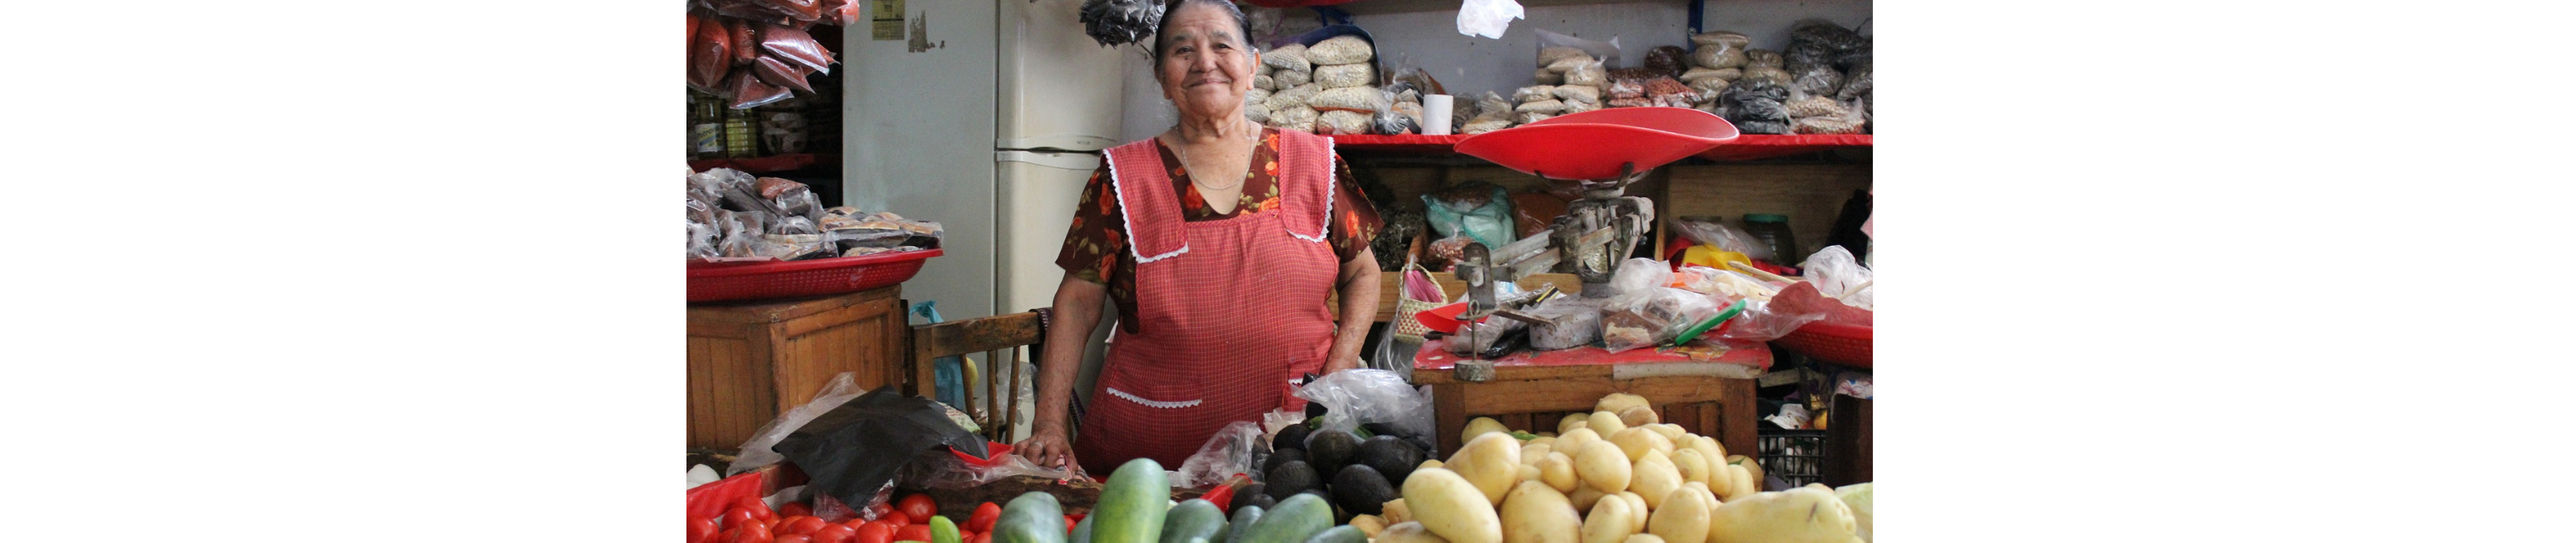 A photo of a smiling Mexican woman inside a traditional shop